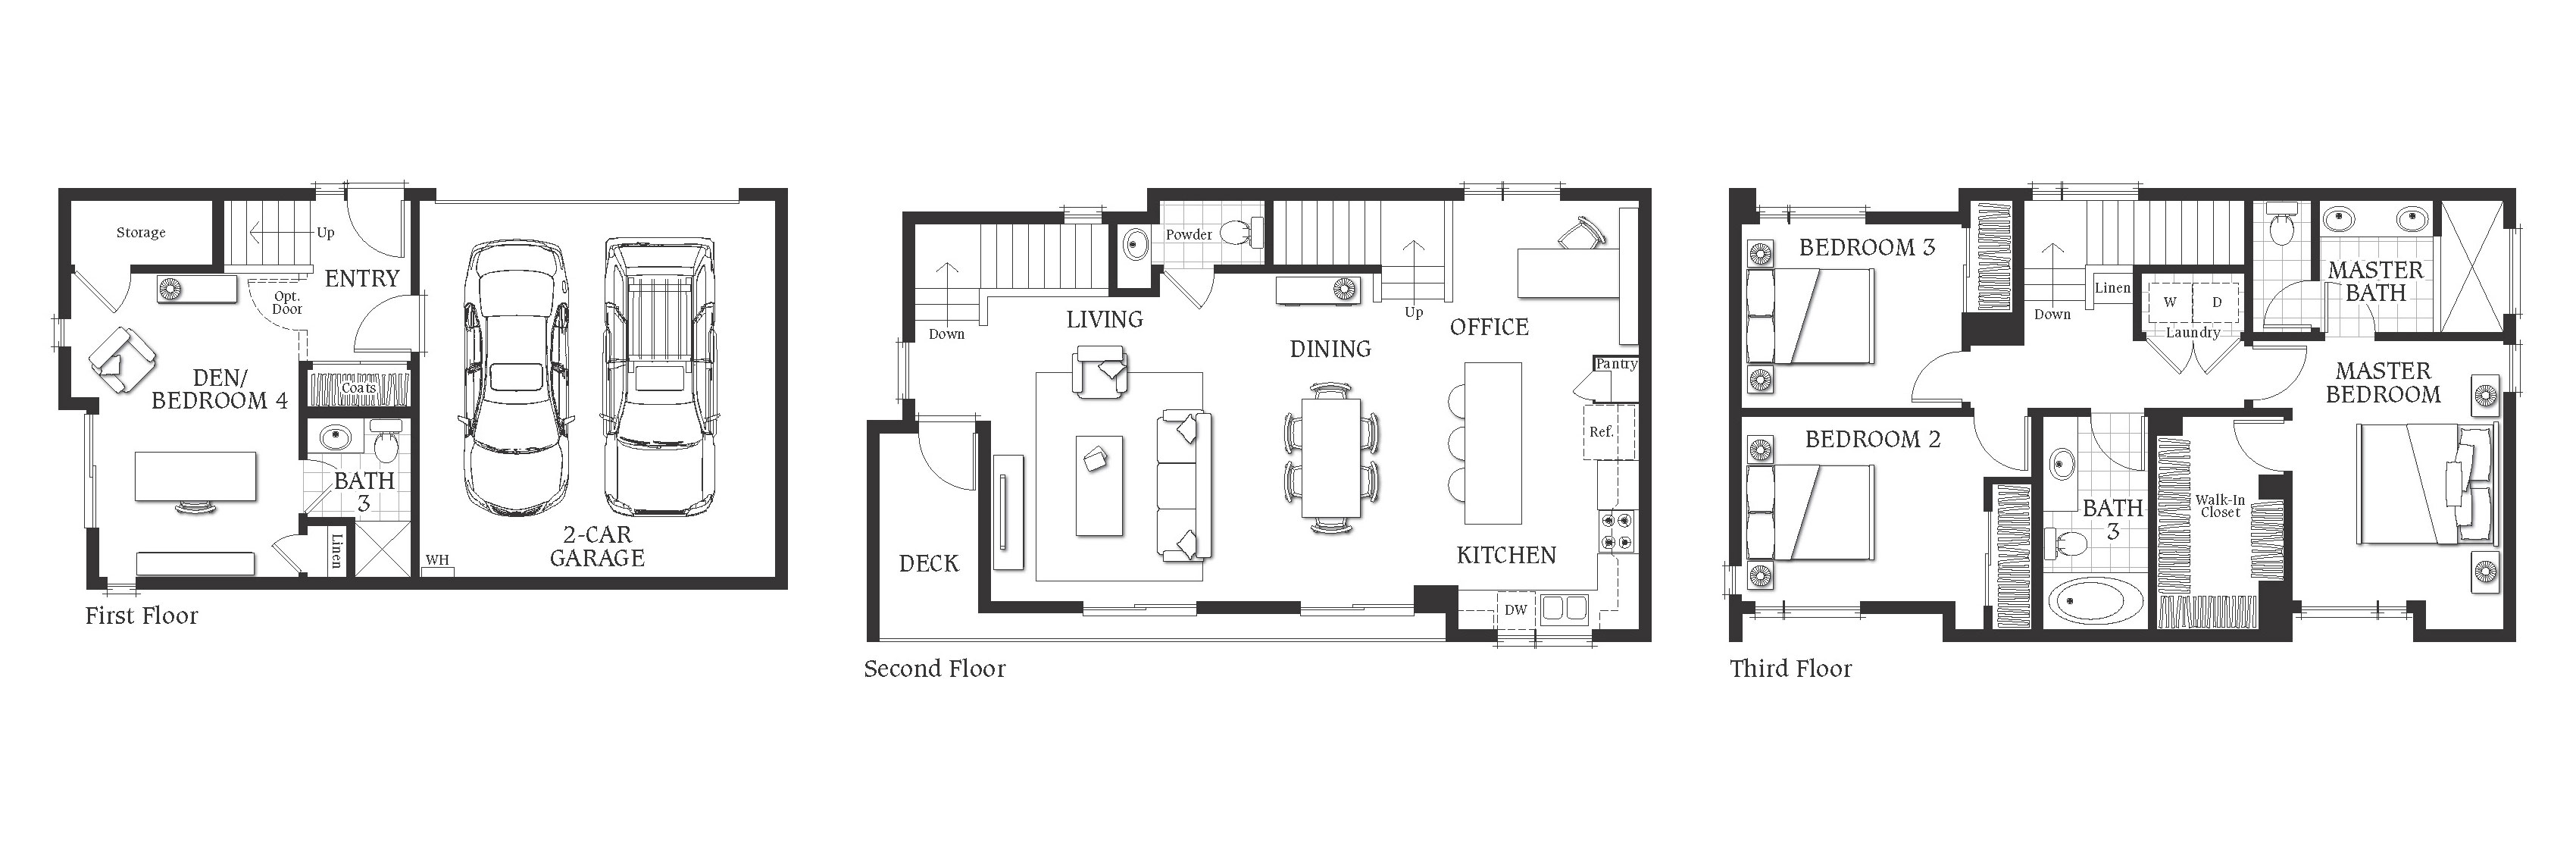 11724 Culver: Floor Plan A2